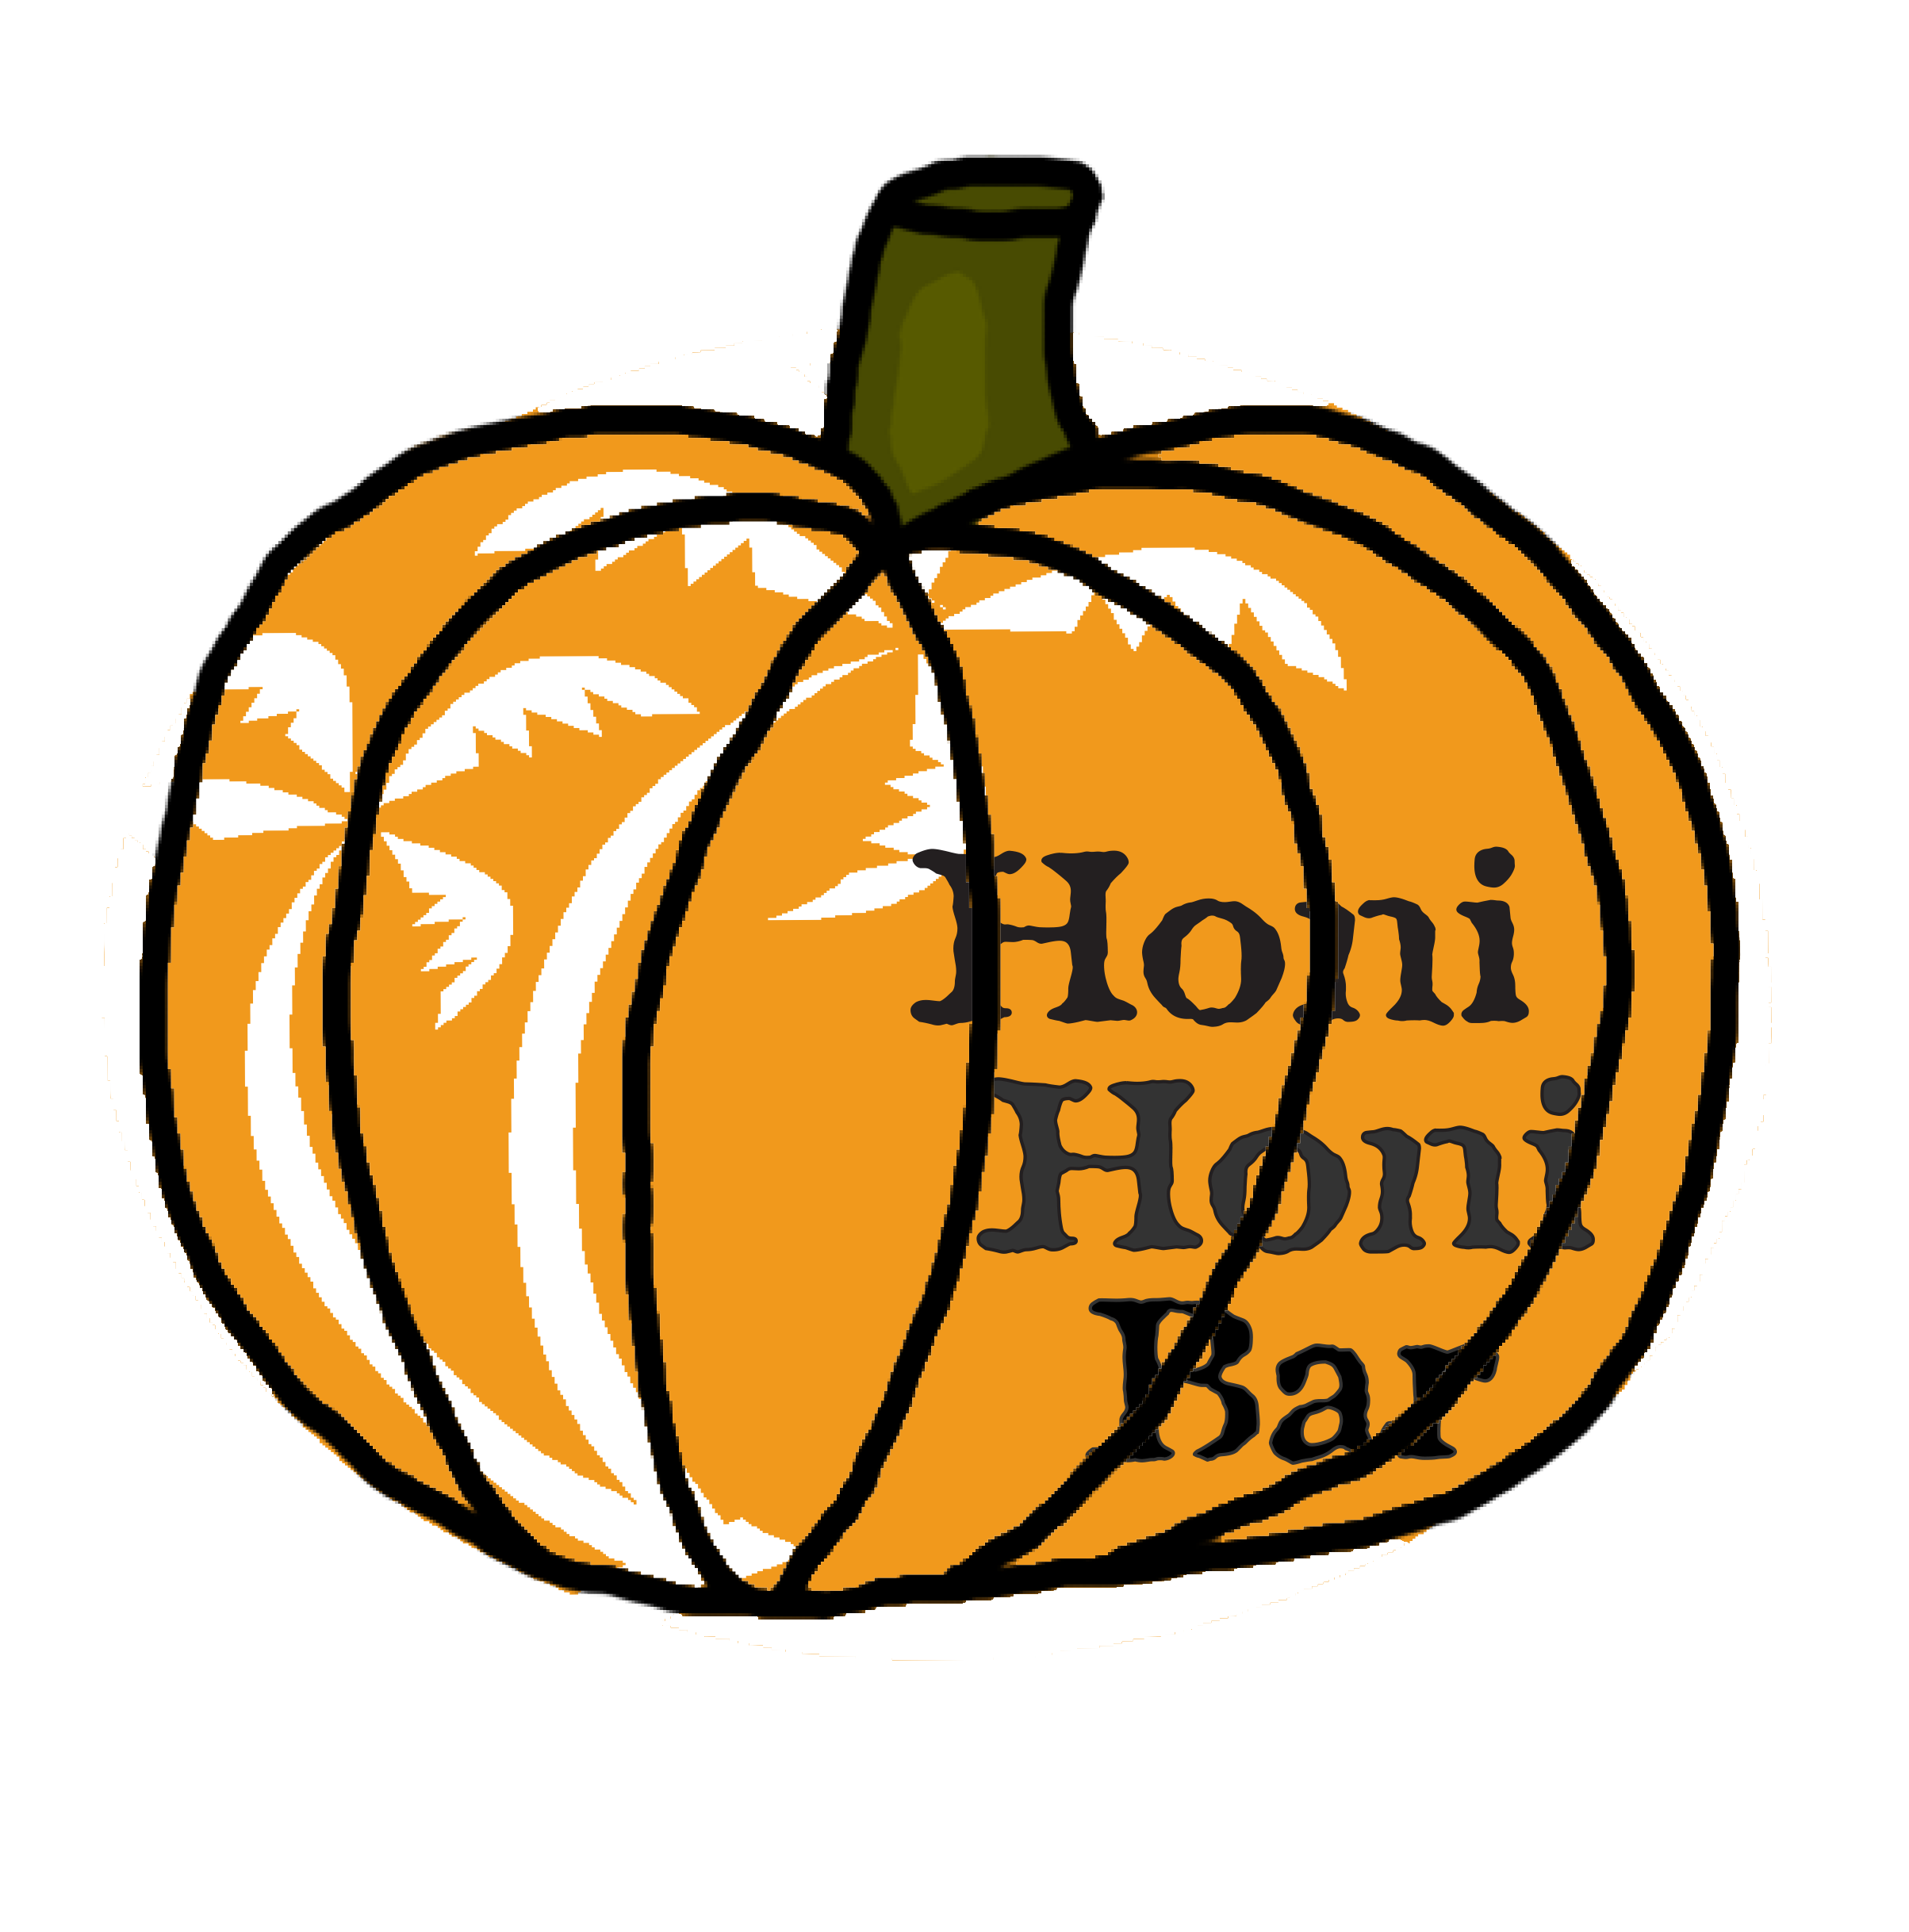 Pumpkin & leaf bars clipart clipart stock Honi-Honi Bar - Happenings clipart stock